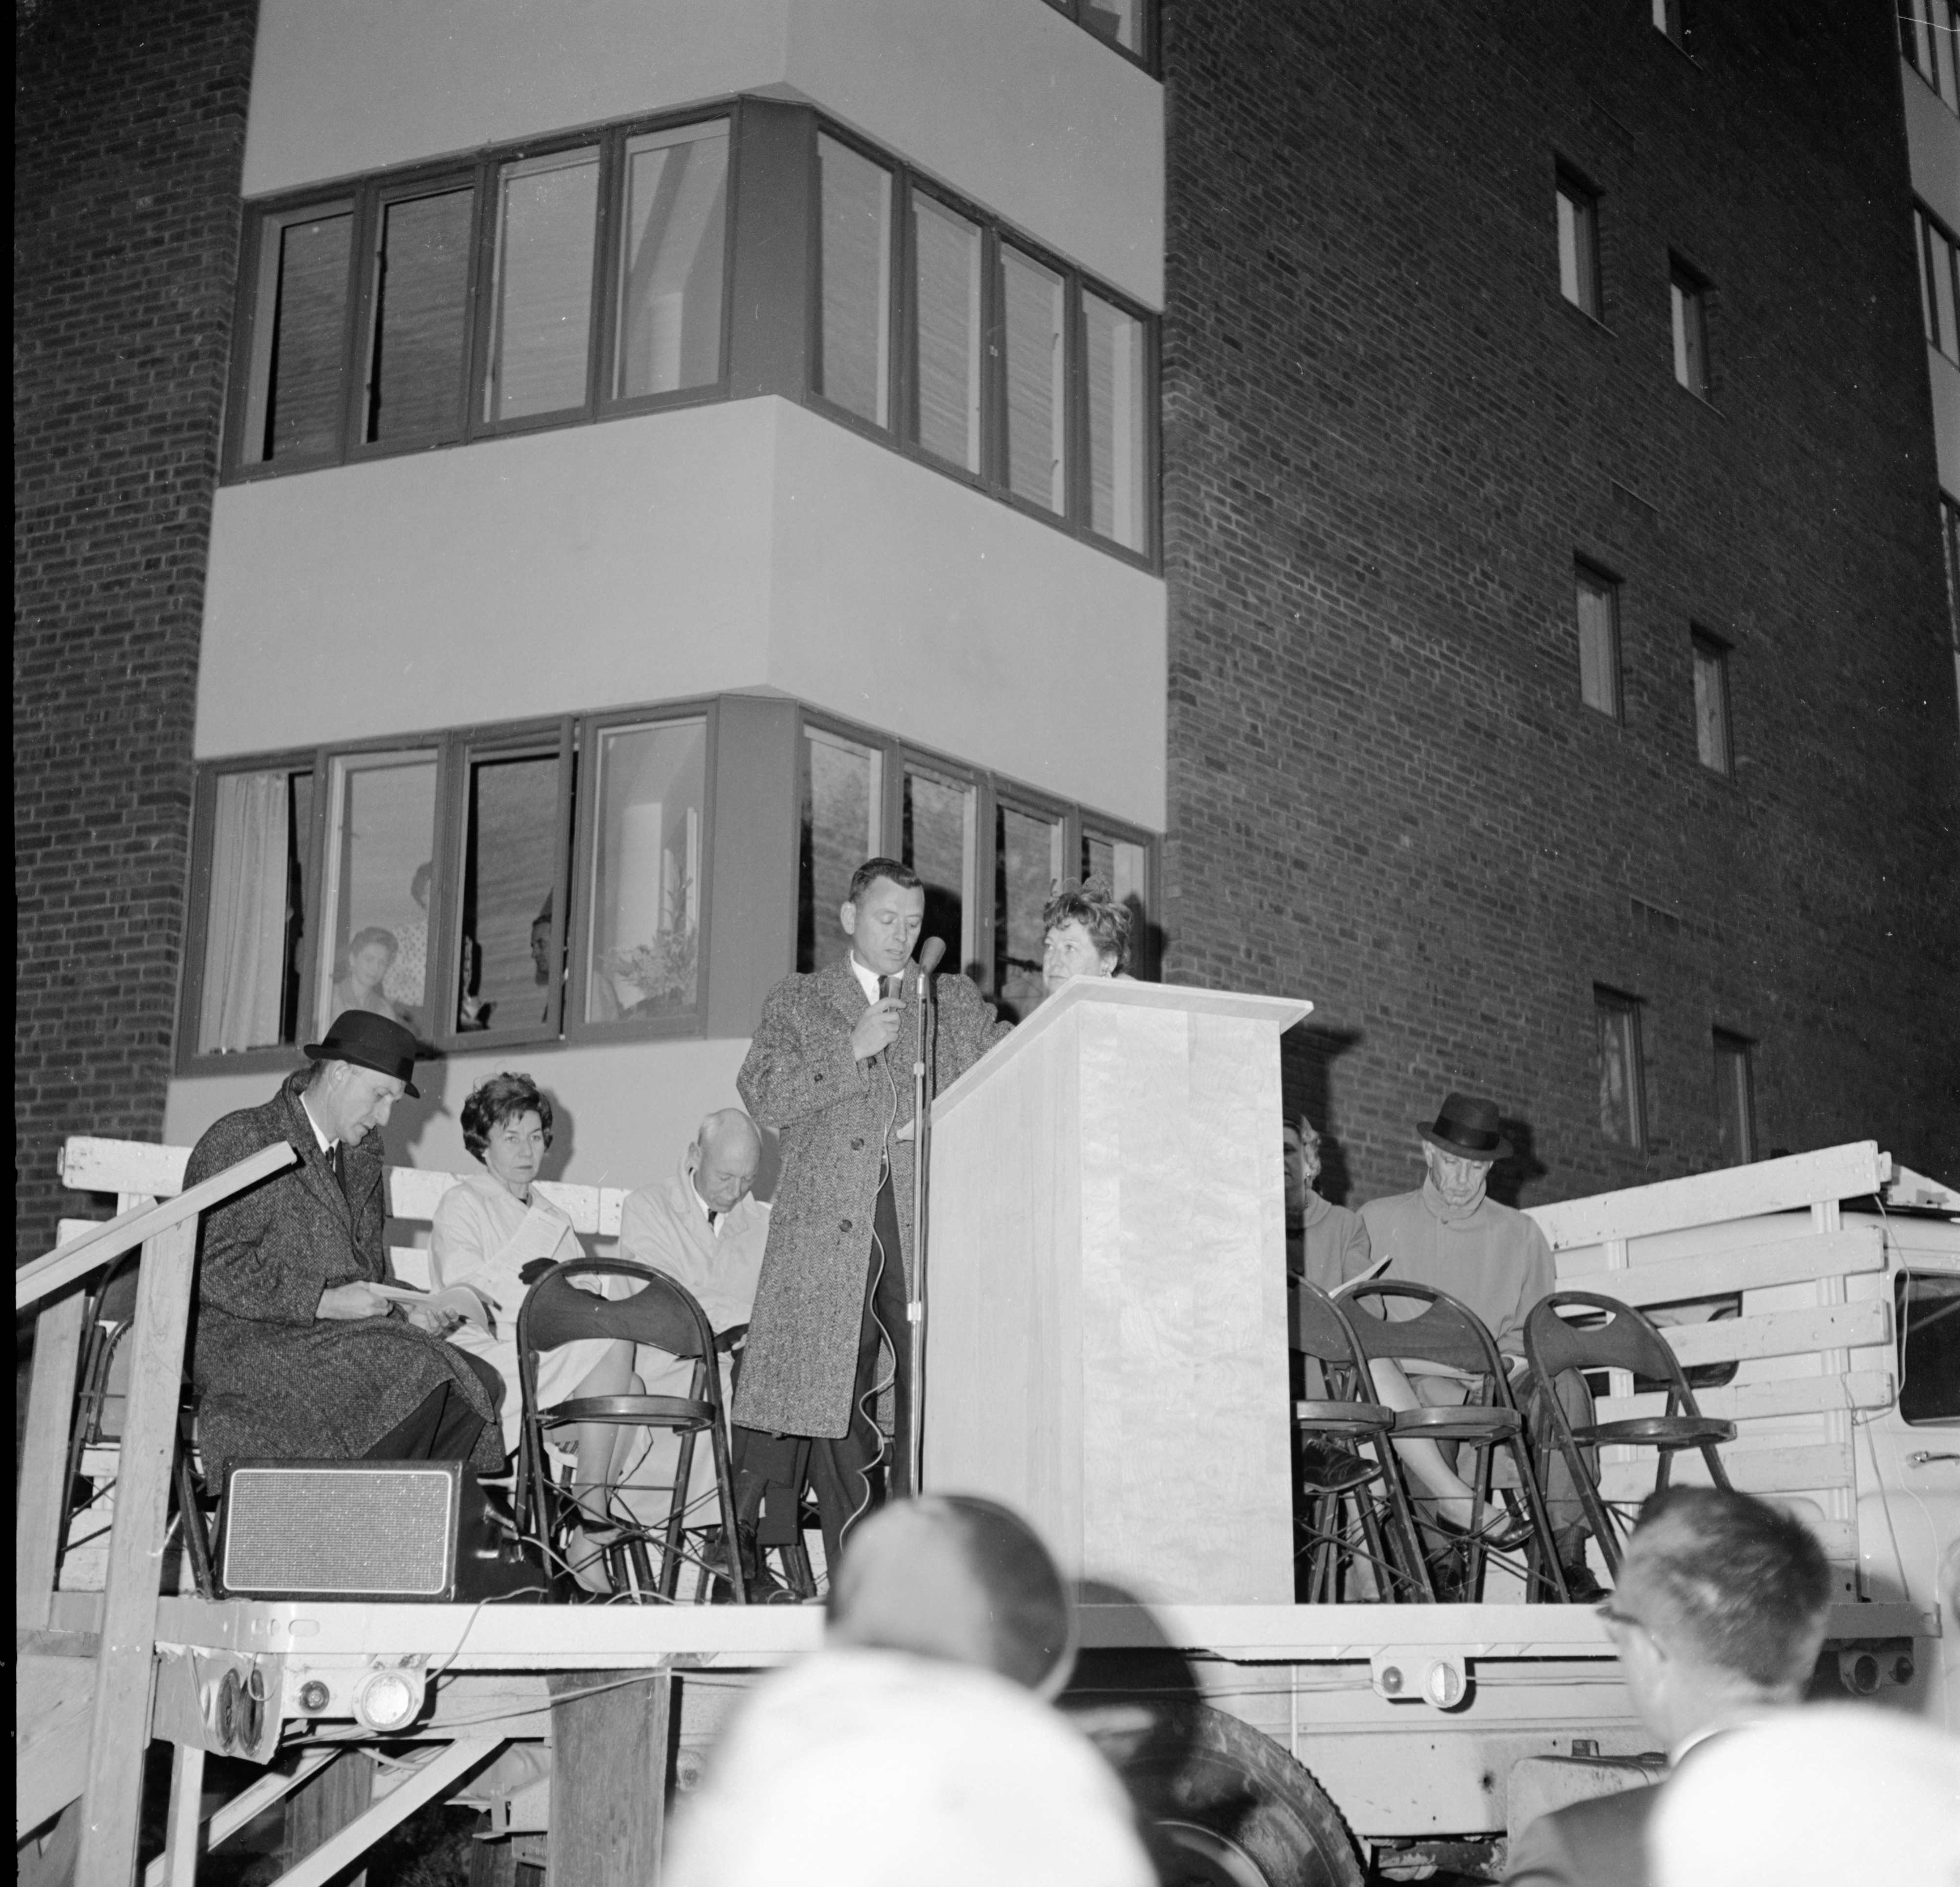 Two Speakers At Dedication of Lurie Terrace, October 1964 image